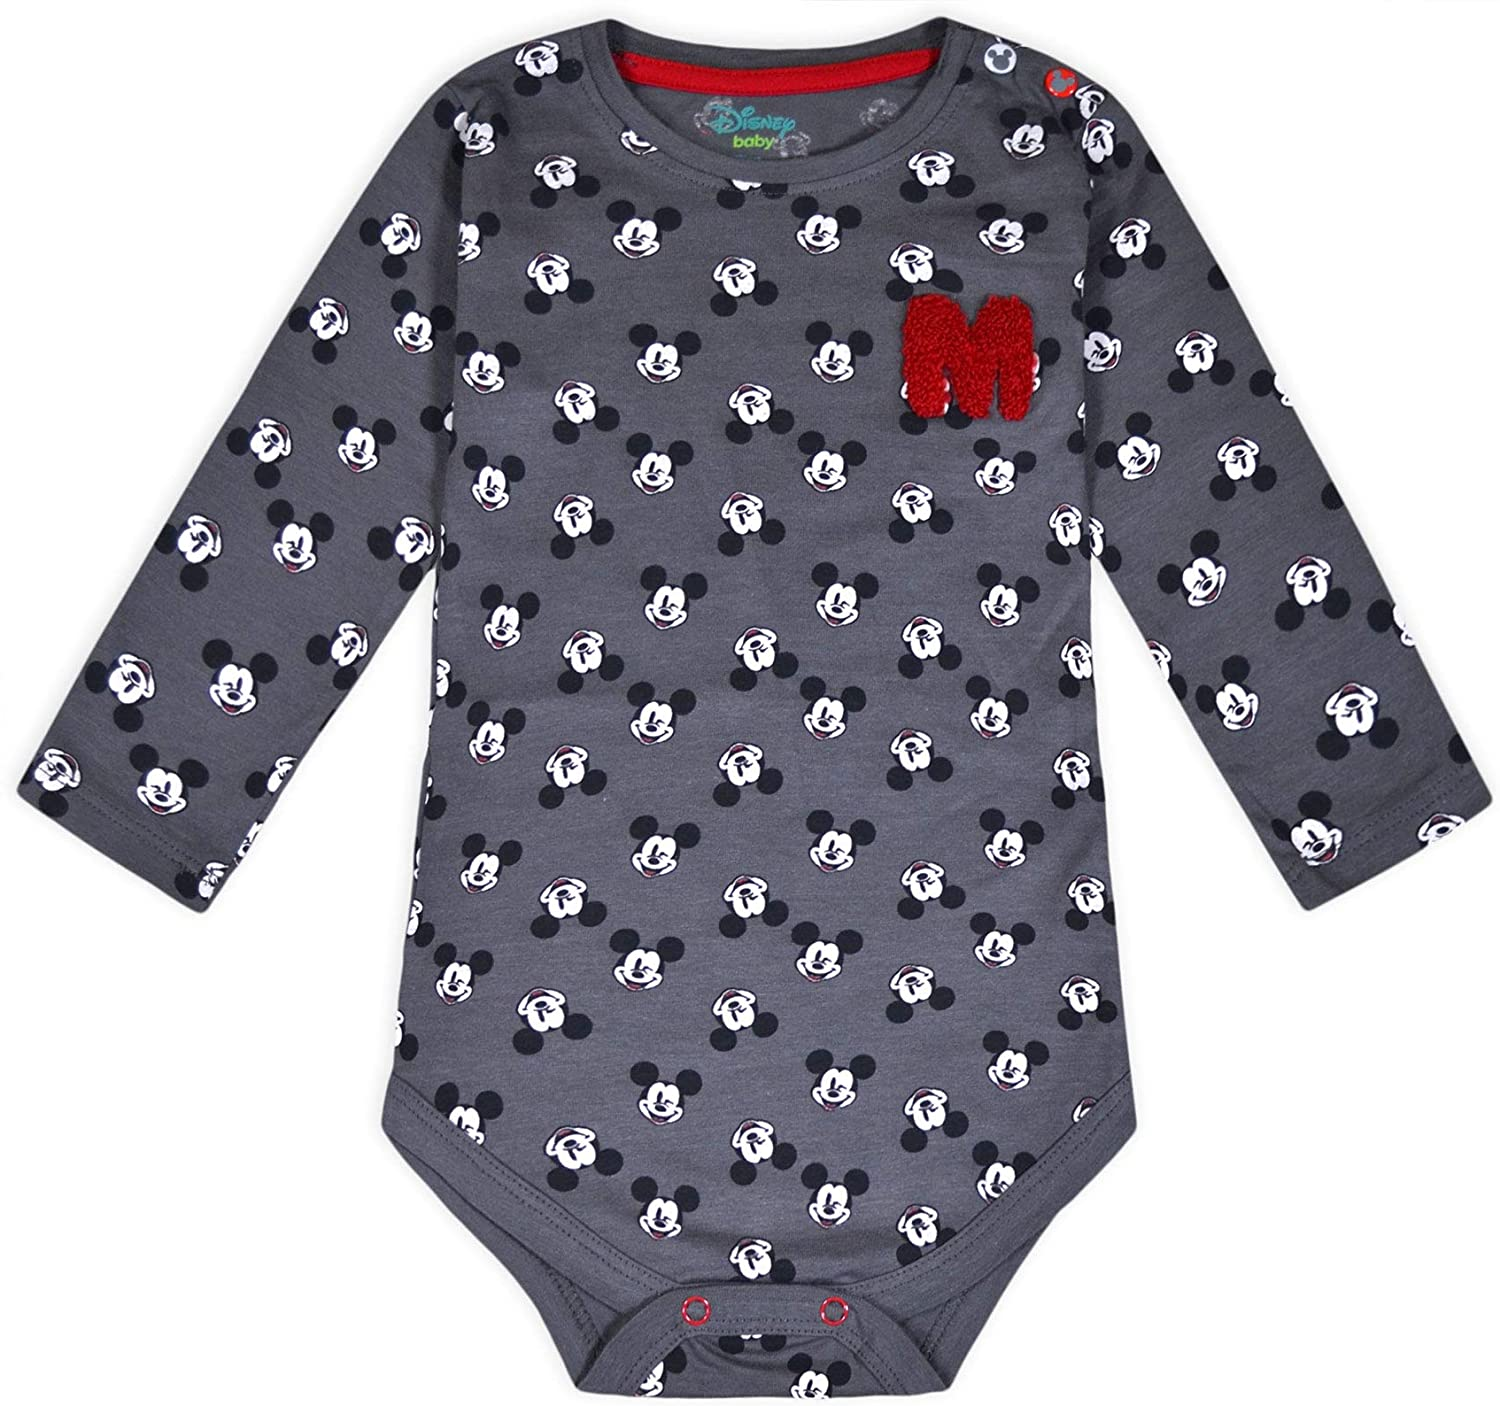 JollyRascals Baby Grow Boys Disney Micky Mouse Sleepsuit Cotton Bodysuit Kids New 0-36 Months